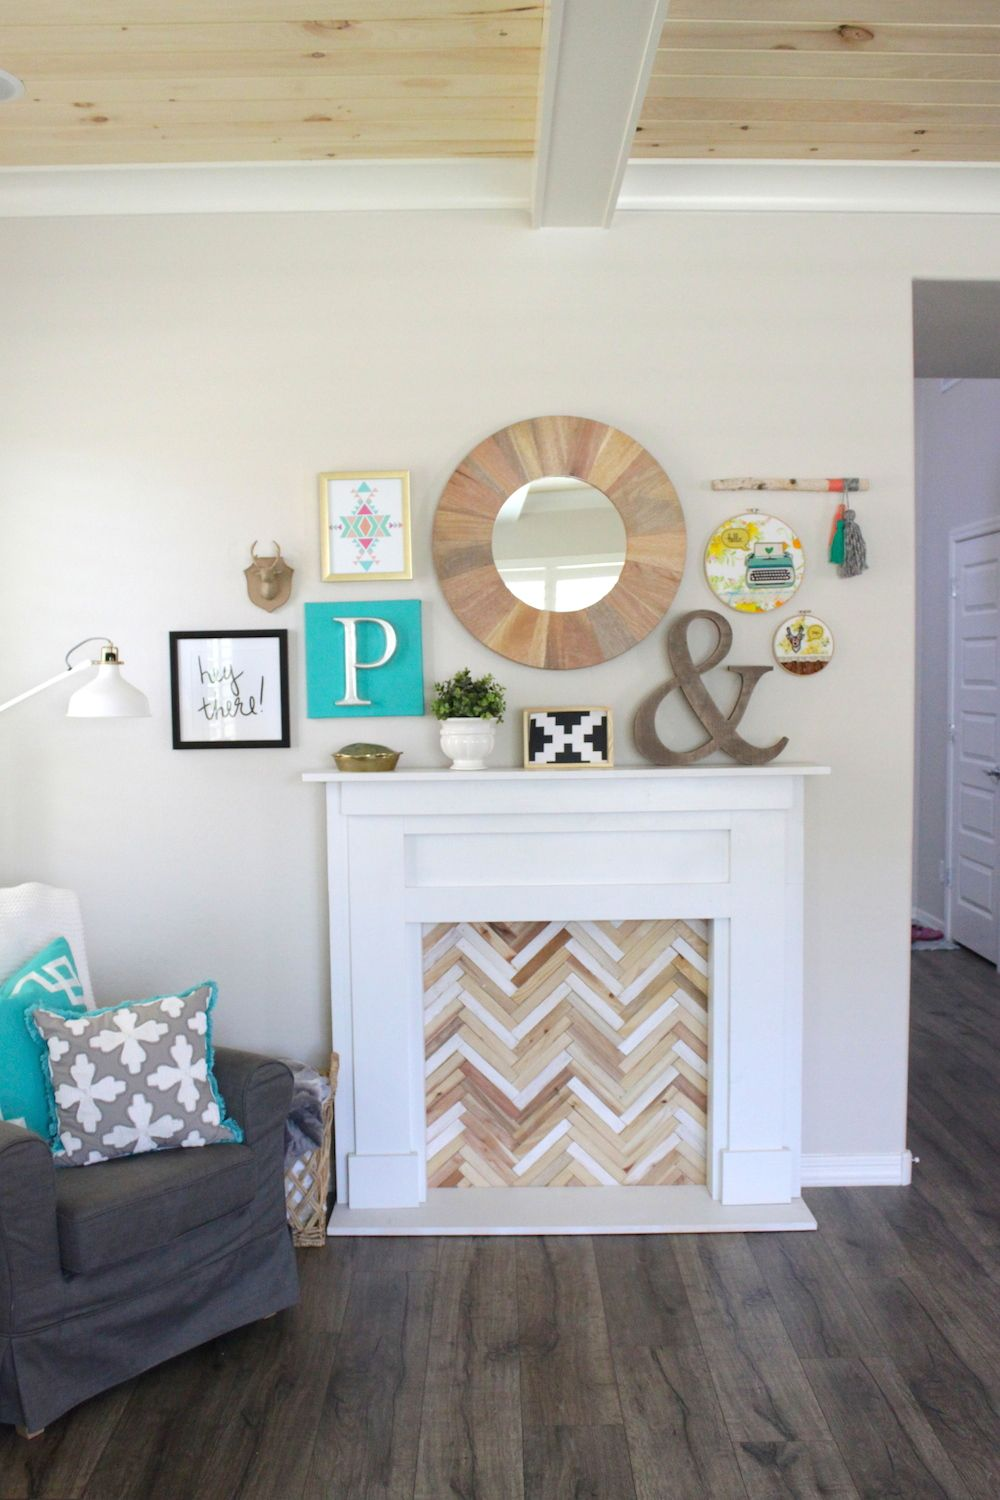 Diy faux fireplace u mantel diy faux fireplace faux fireplace and